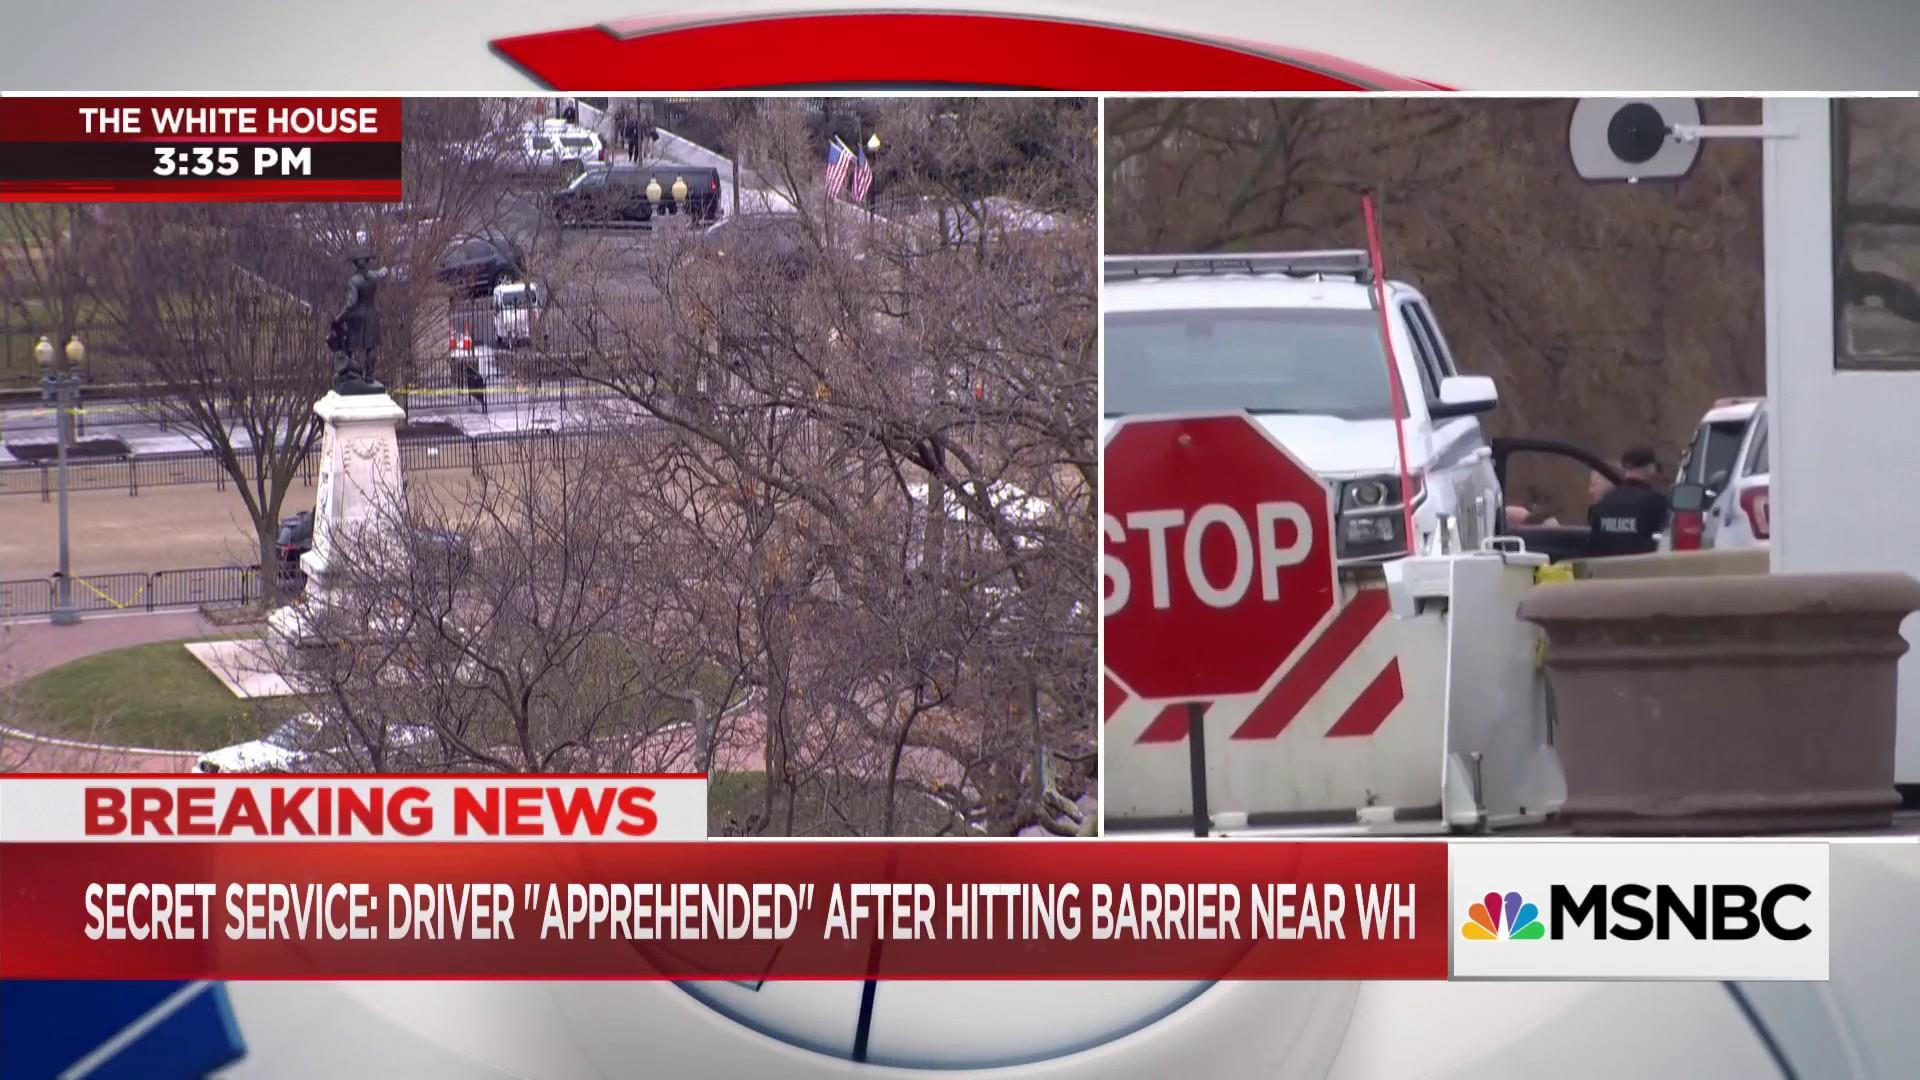 Secret Service: Driver 'apprehended' after hitting barrier near White House